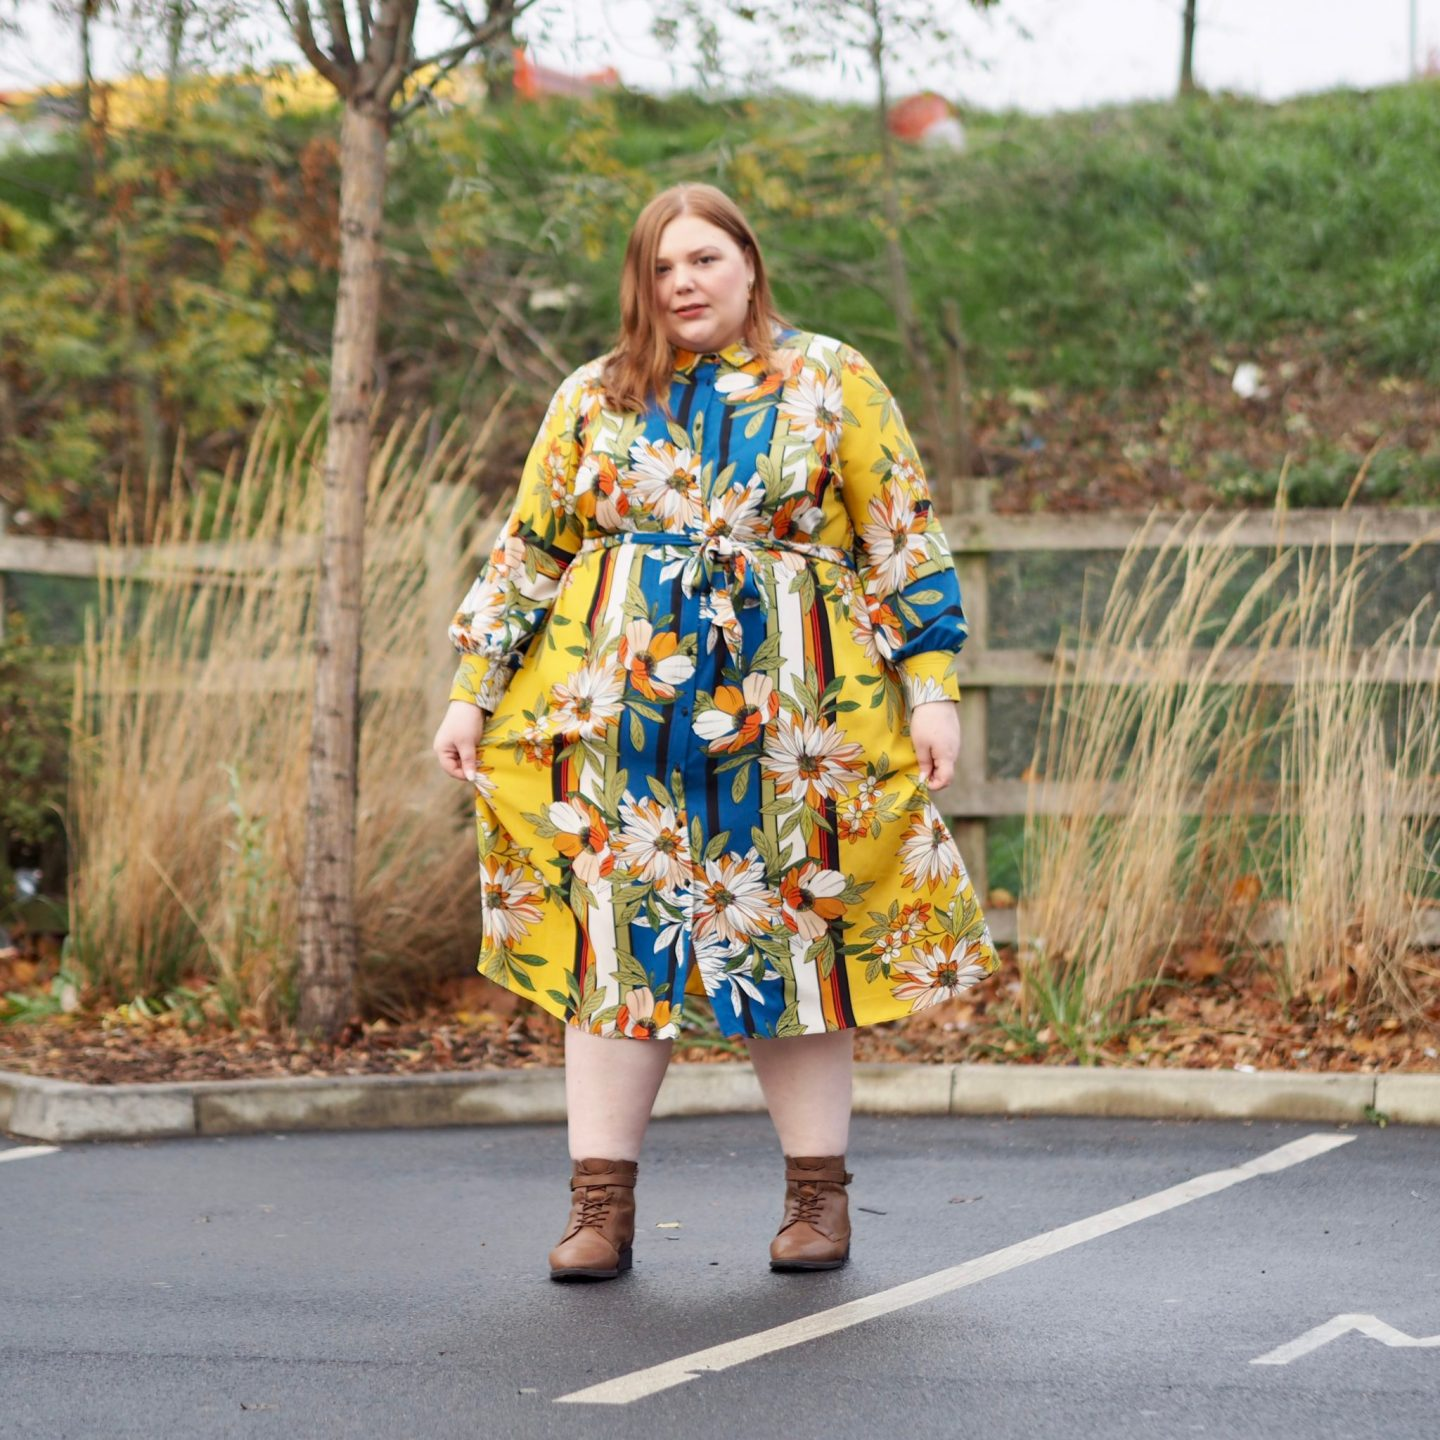 Evans Autumn Midi Dress Plus Size Review - Pretty Big Butterflies